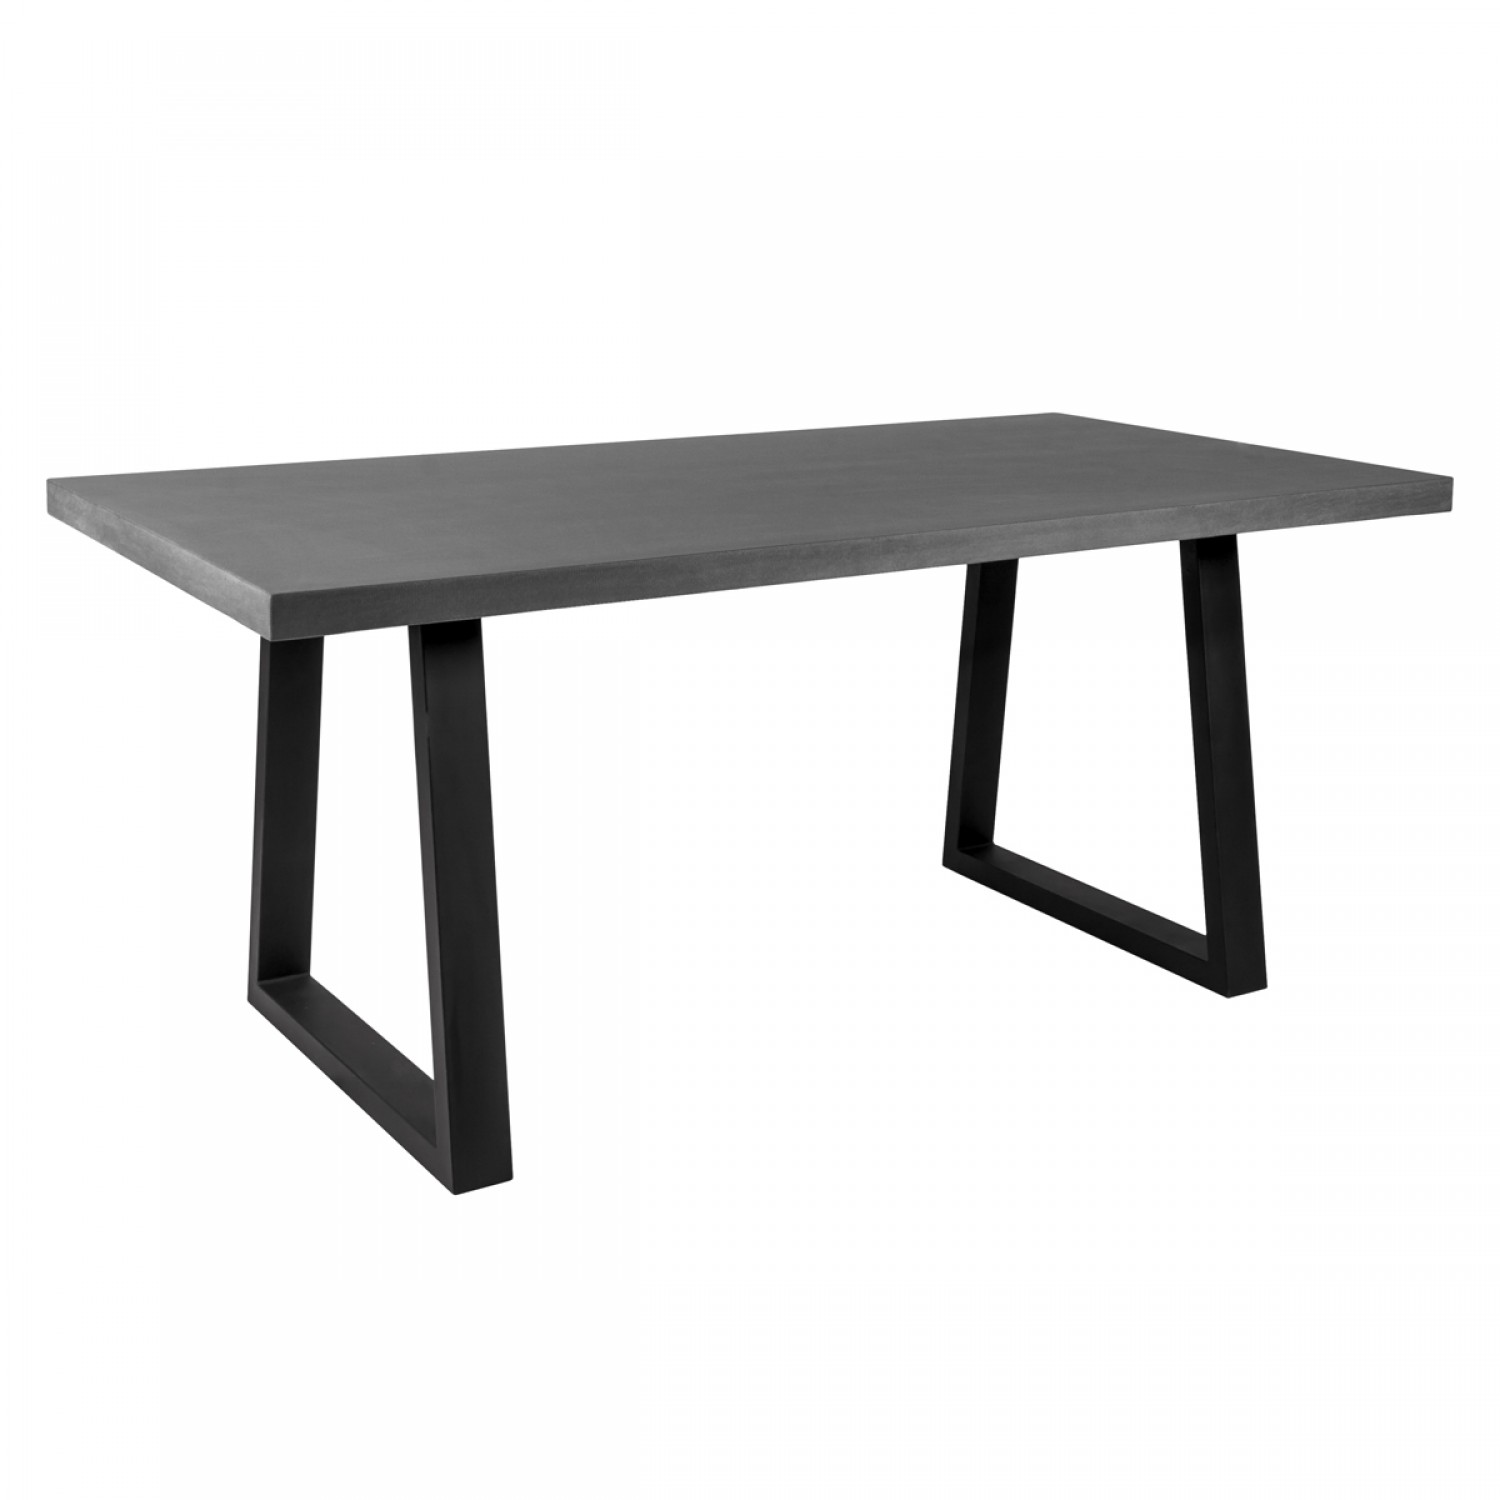 table rectangulaire r sine et m tal 180 cm koya design. Black Bedroom Furniture Sets. Home Design Ideas